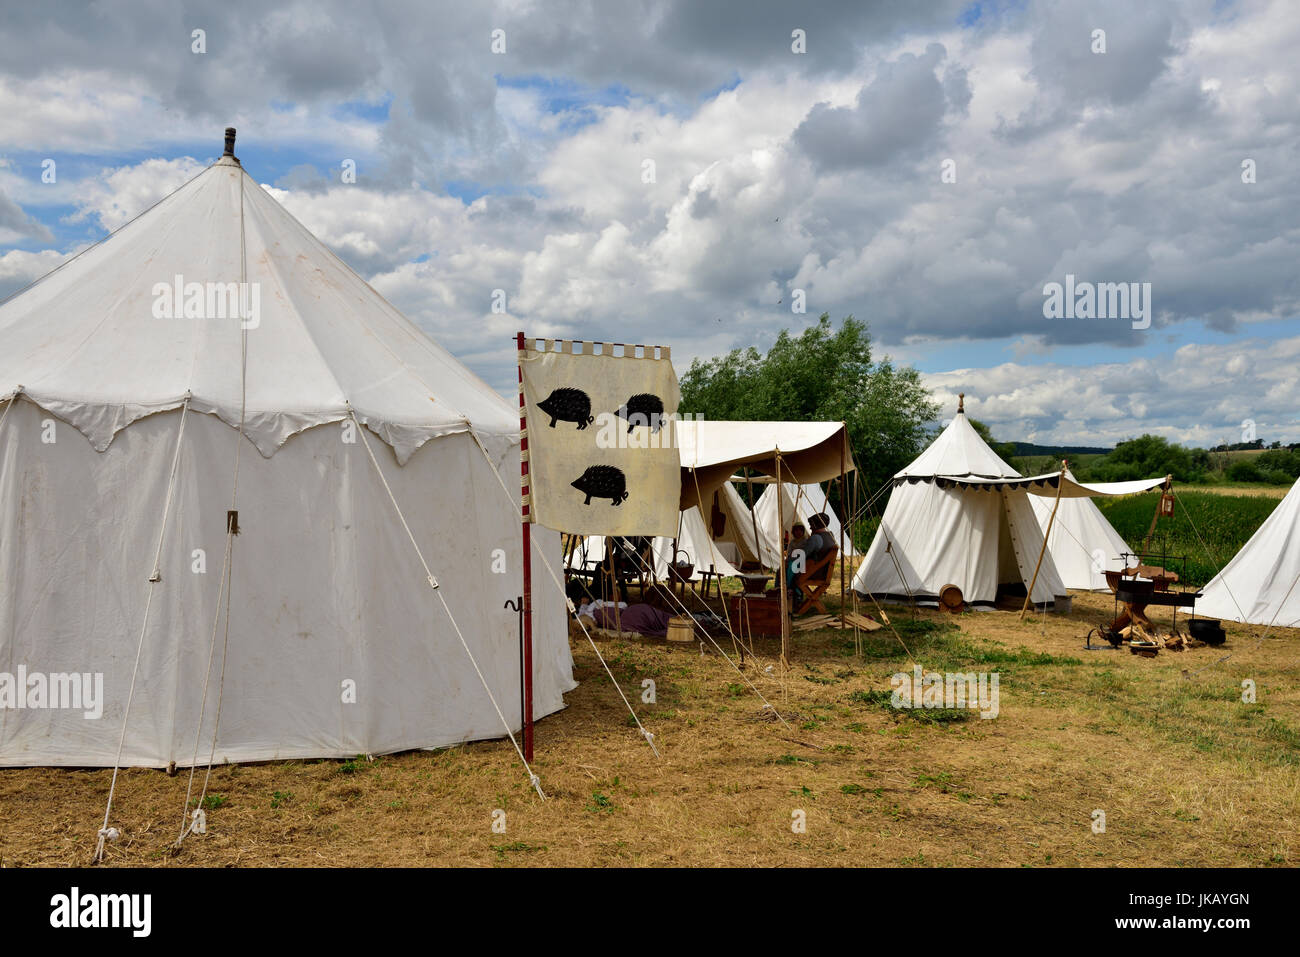 Medieval style military c& with tents at Tewkesbury Medieval re-enactment Festival 2017 & Medieval style military camp with tents at Tewkesbury Medieval ...